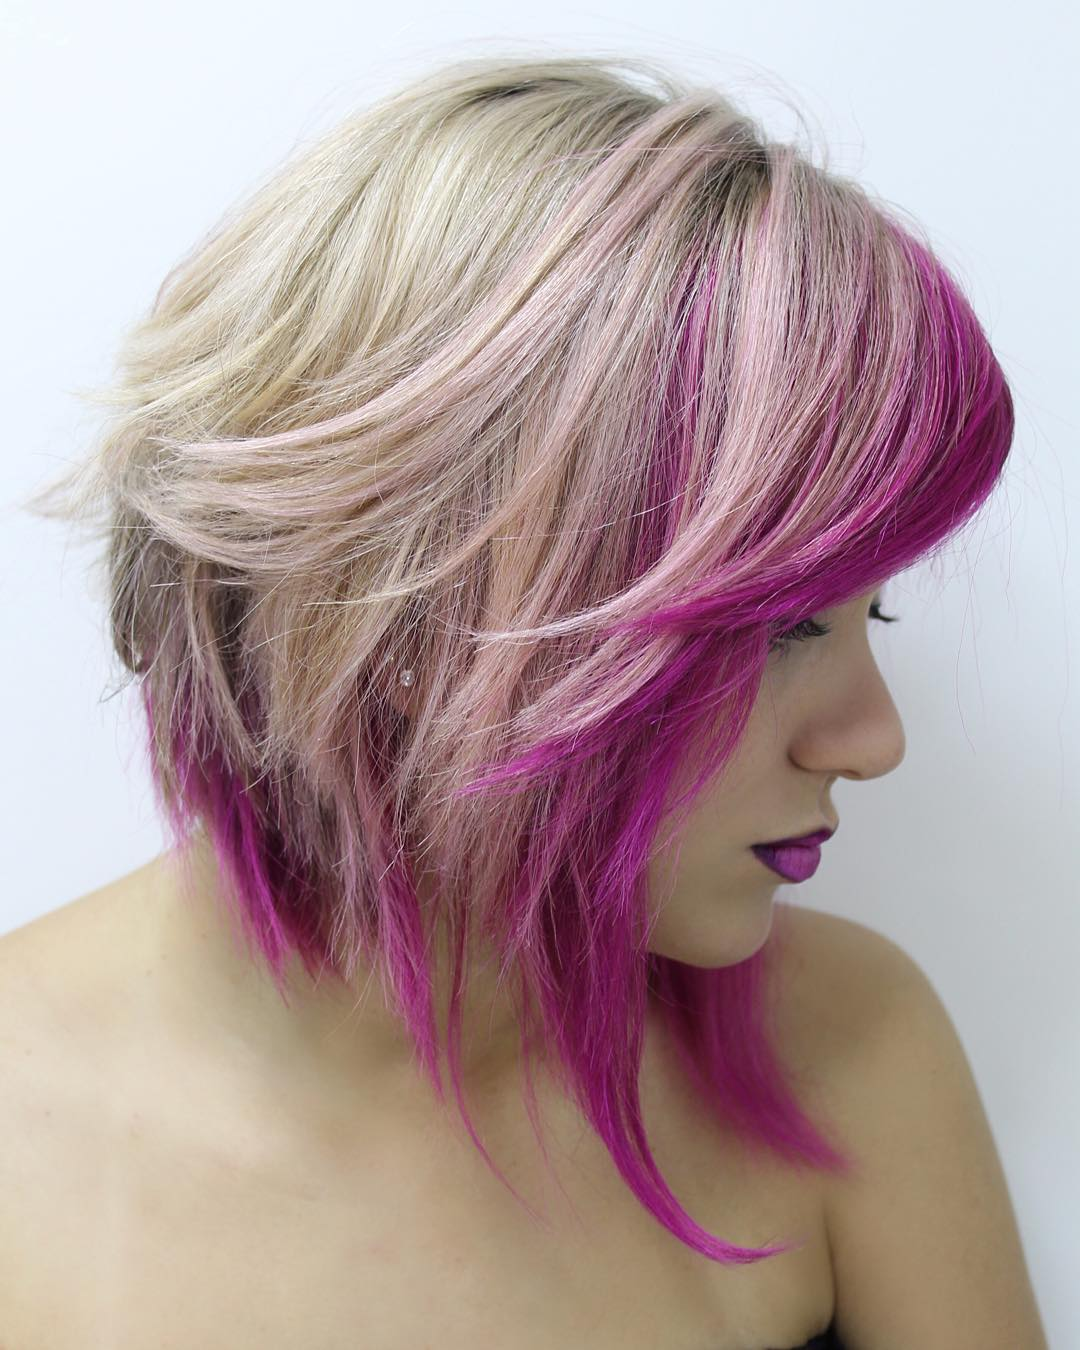 Bob Hairstyles 2018 Blonde Angled Lob With Pink Highlights Haircut